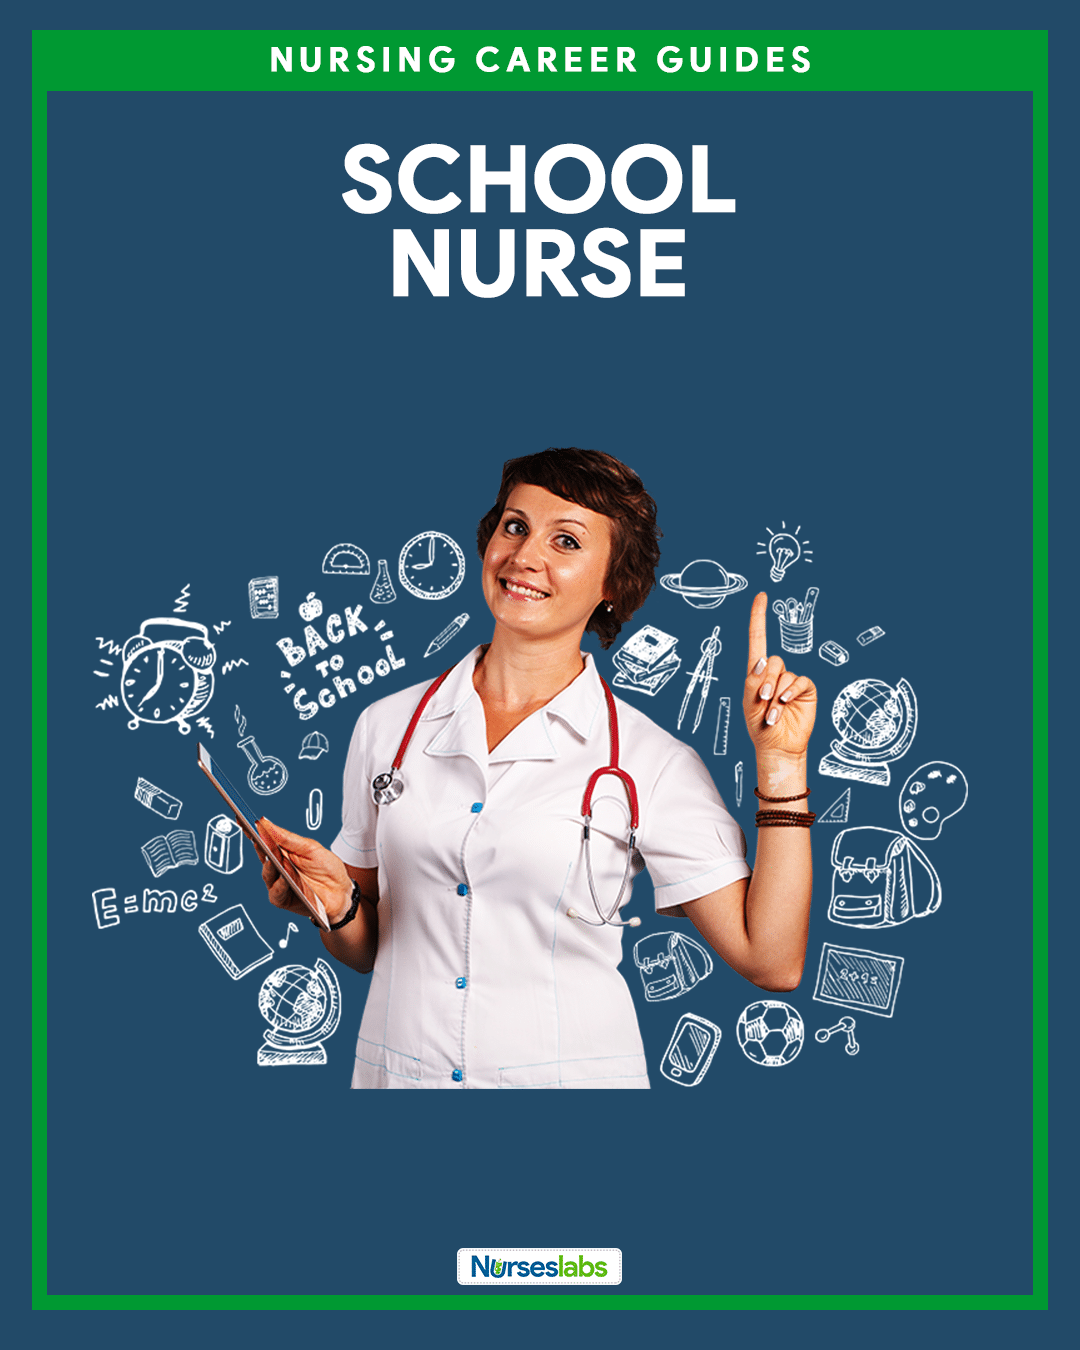 School Nurse: Everything You Need to Know About School Nursing